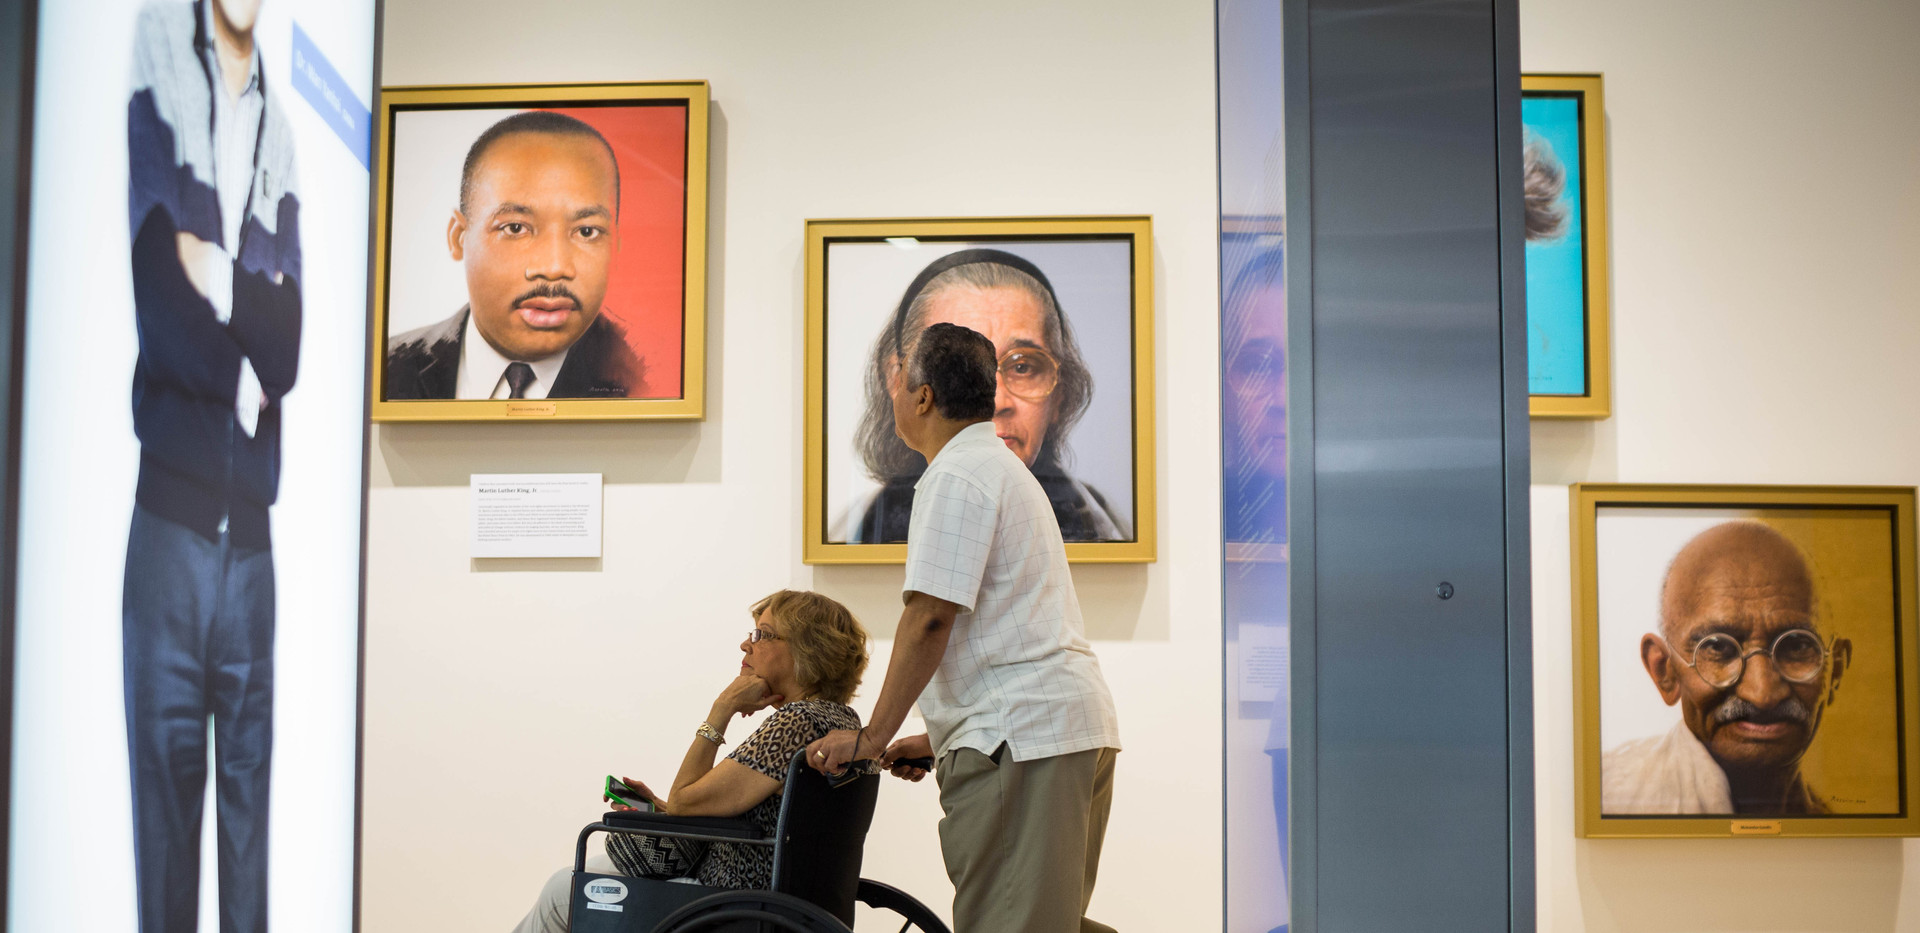 National Center for Civil & Human Rights HR Gallery Portrait Wall